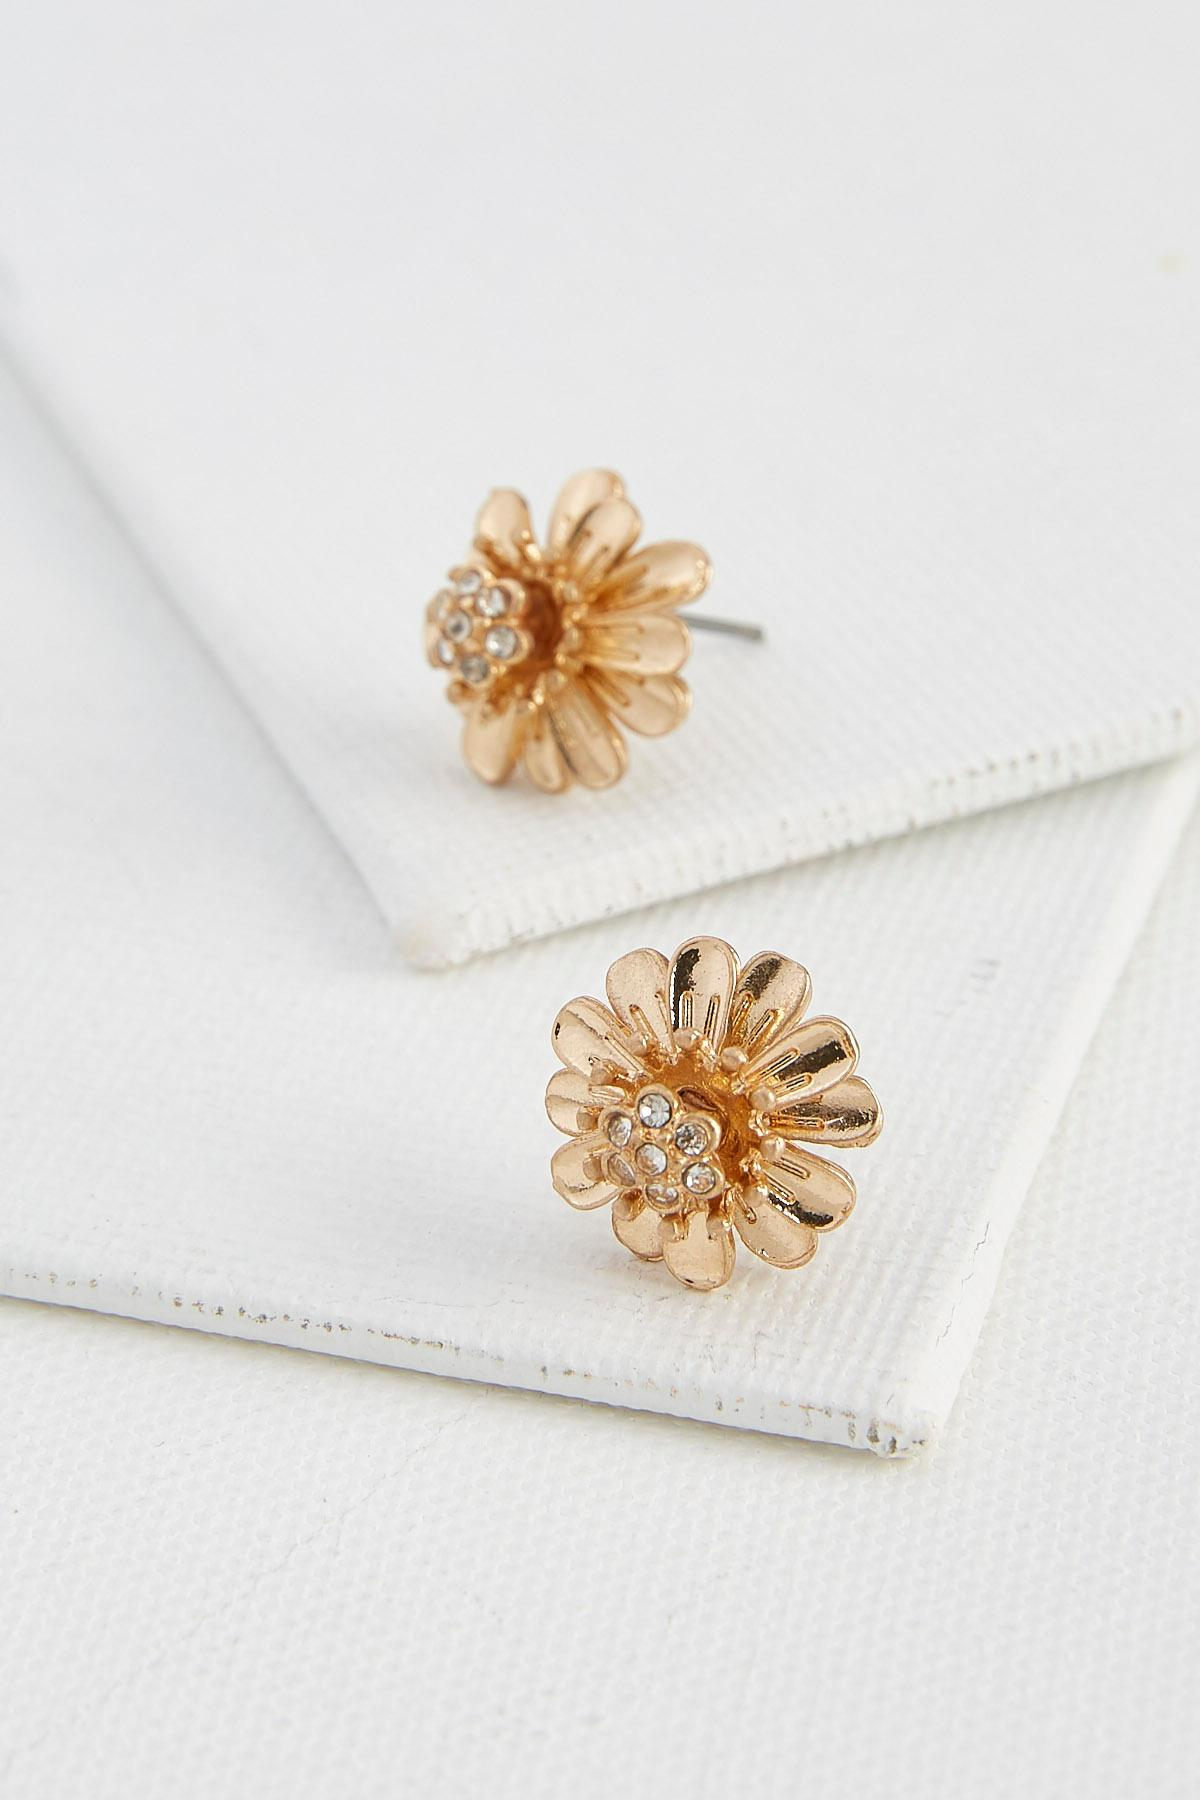 Stone Centered Flower Stud Earrings